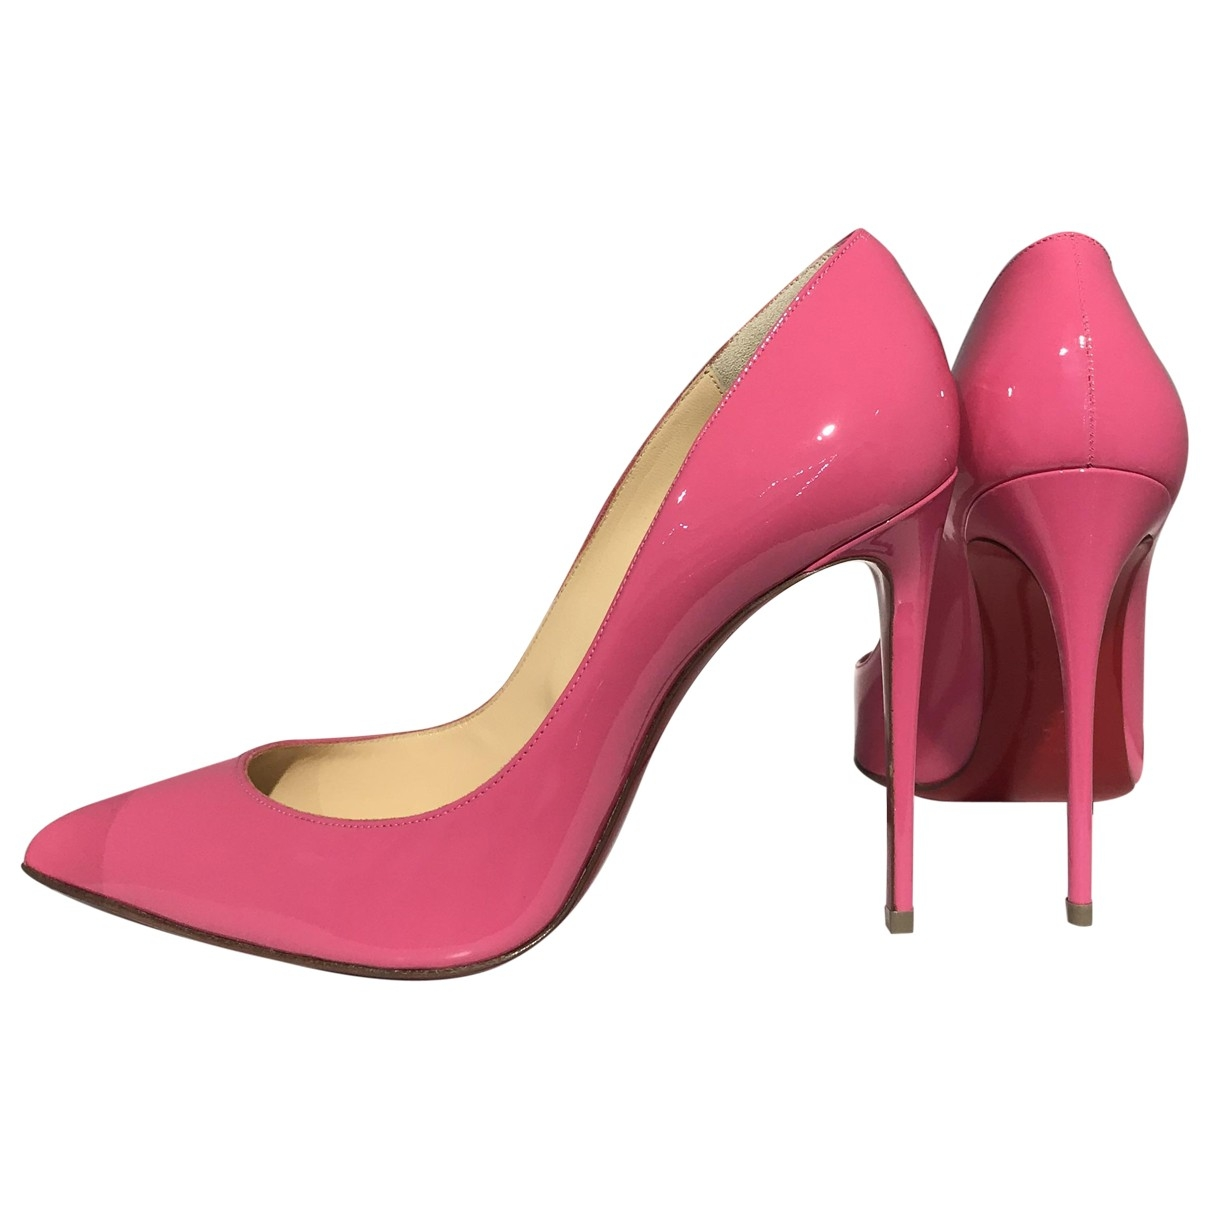 Christian Louboutin So Kate  Pink Patent leather Heels for Women 38.5 EU